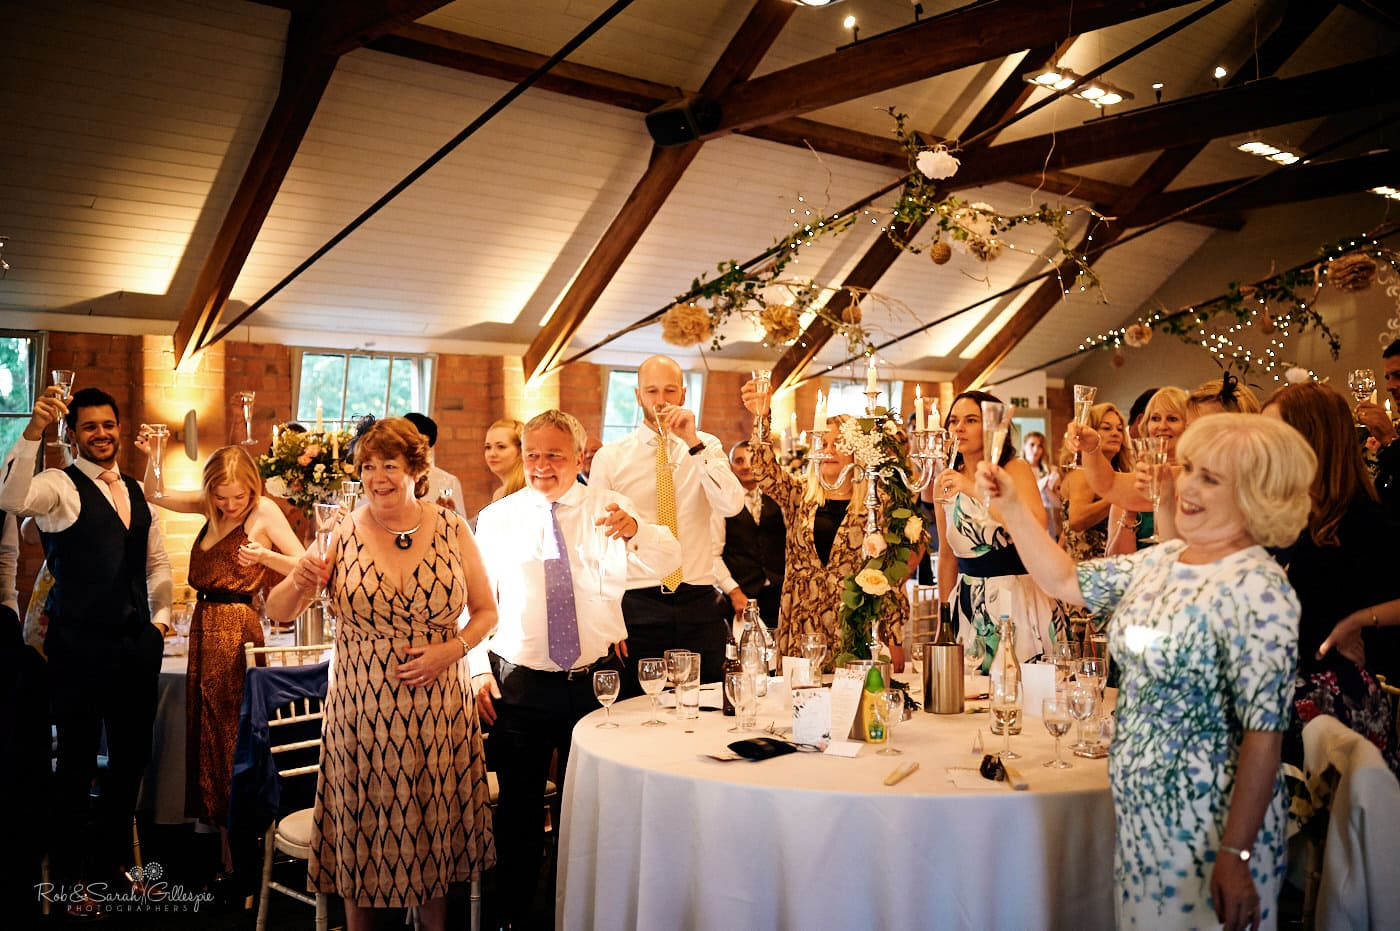 Wedding guests raise toast during speeches